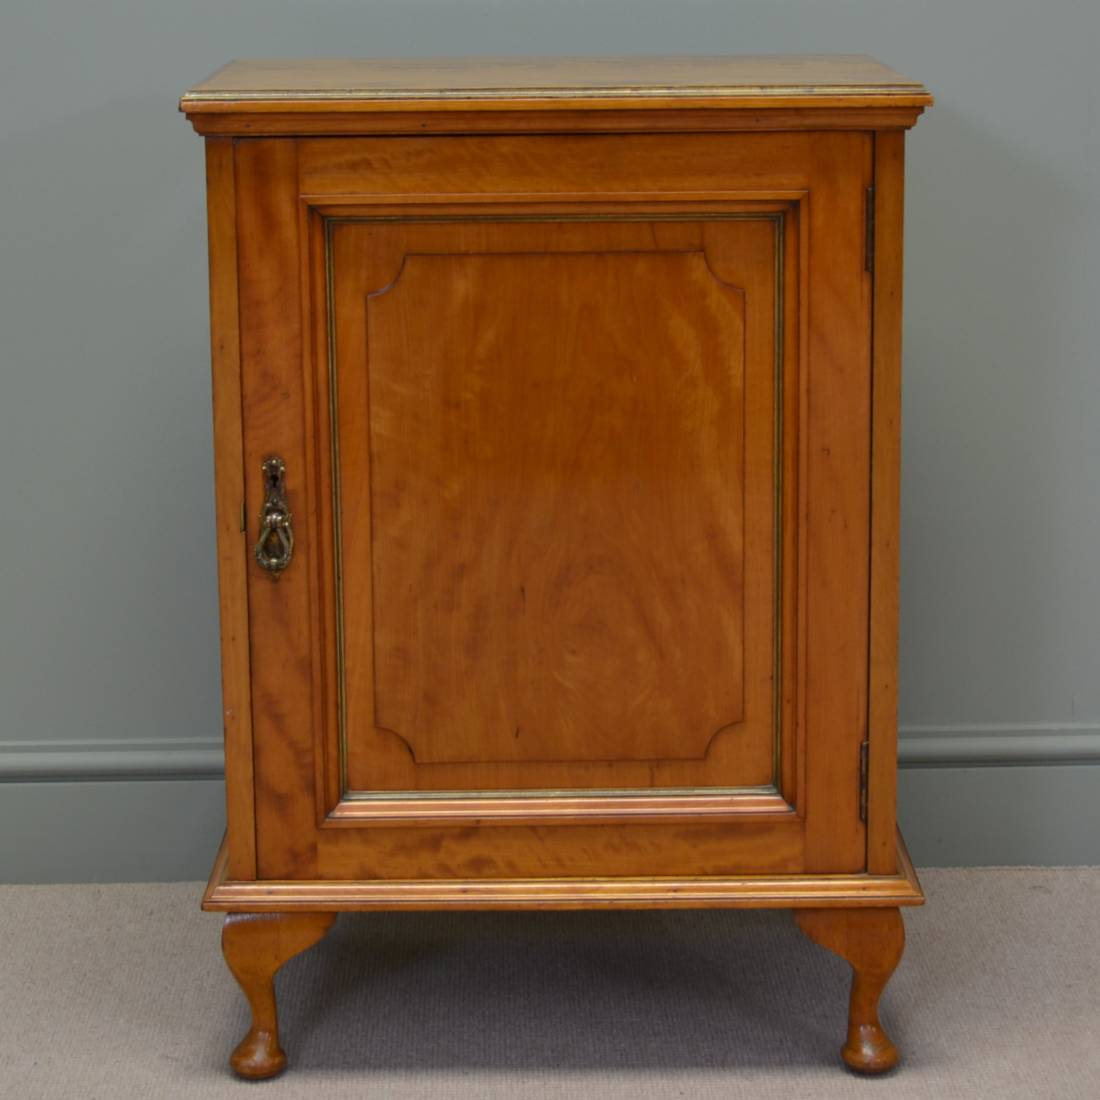 Rare, Unusual, Gillows of Lancaster, Satinwood Antique Cabinet.